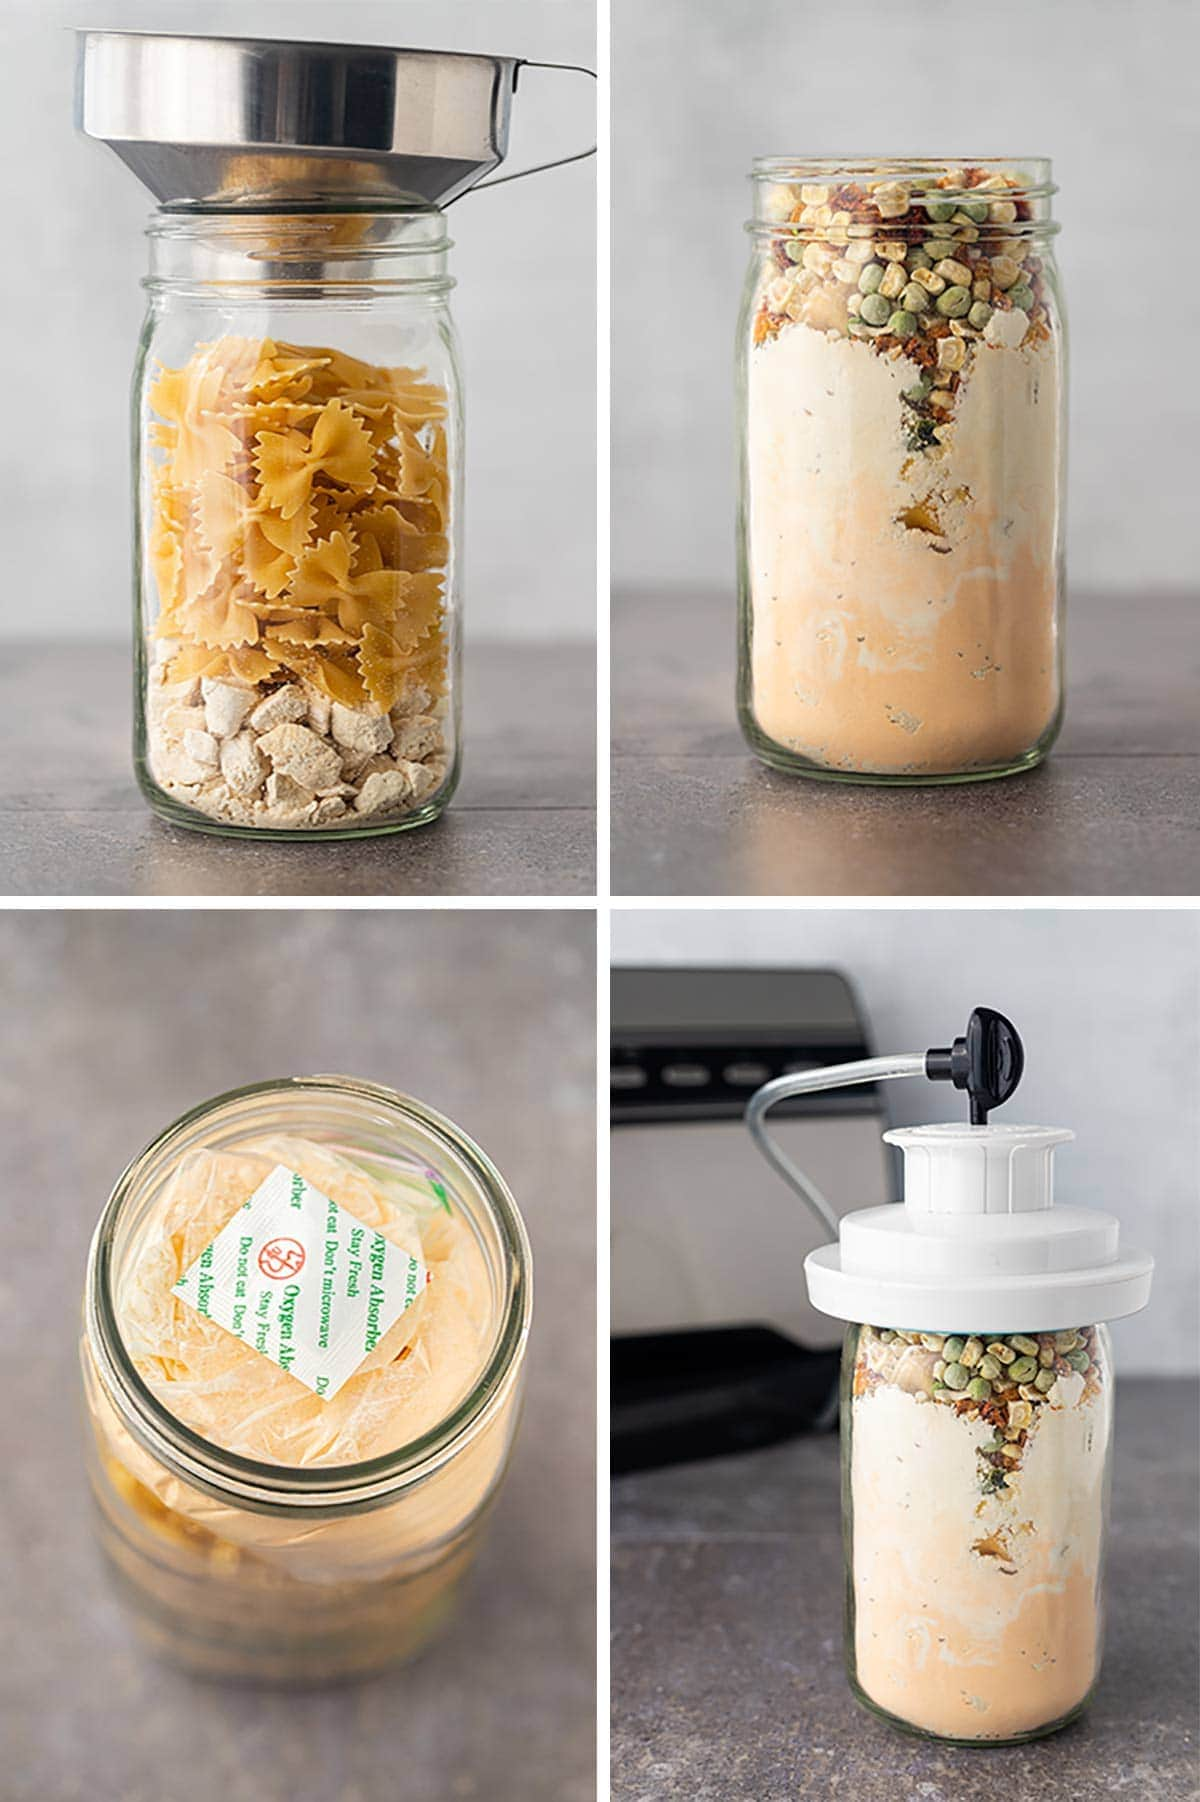 Collage of process steps showing how to fill the jar to make Creamy Chicken Veggie Casserole meal in a jar and seal effectively.